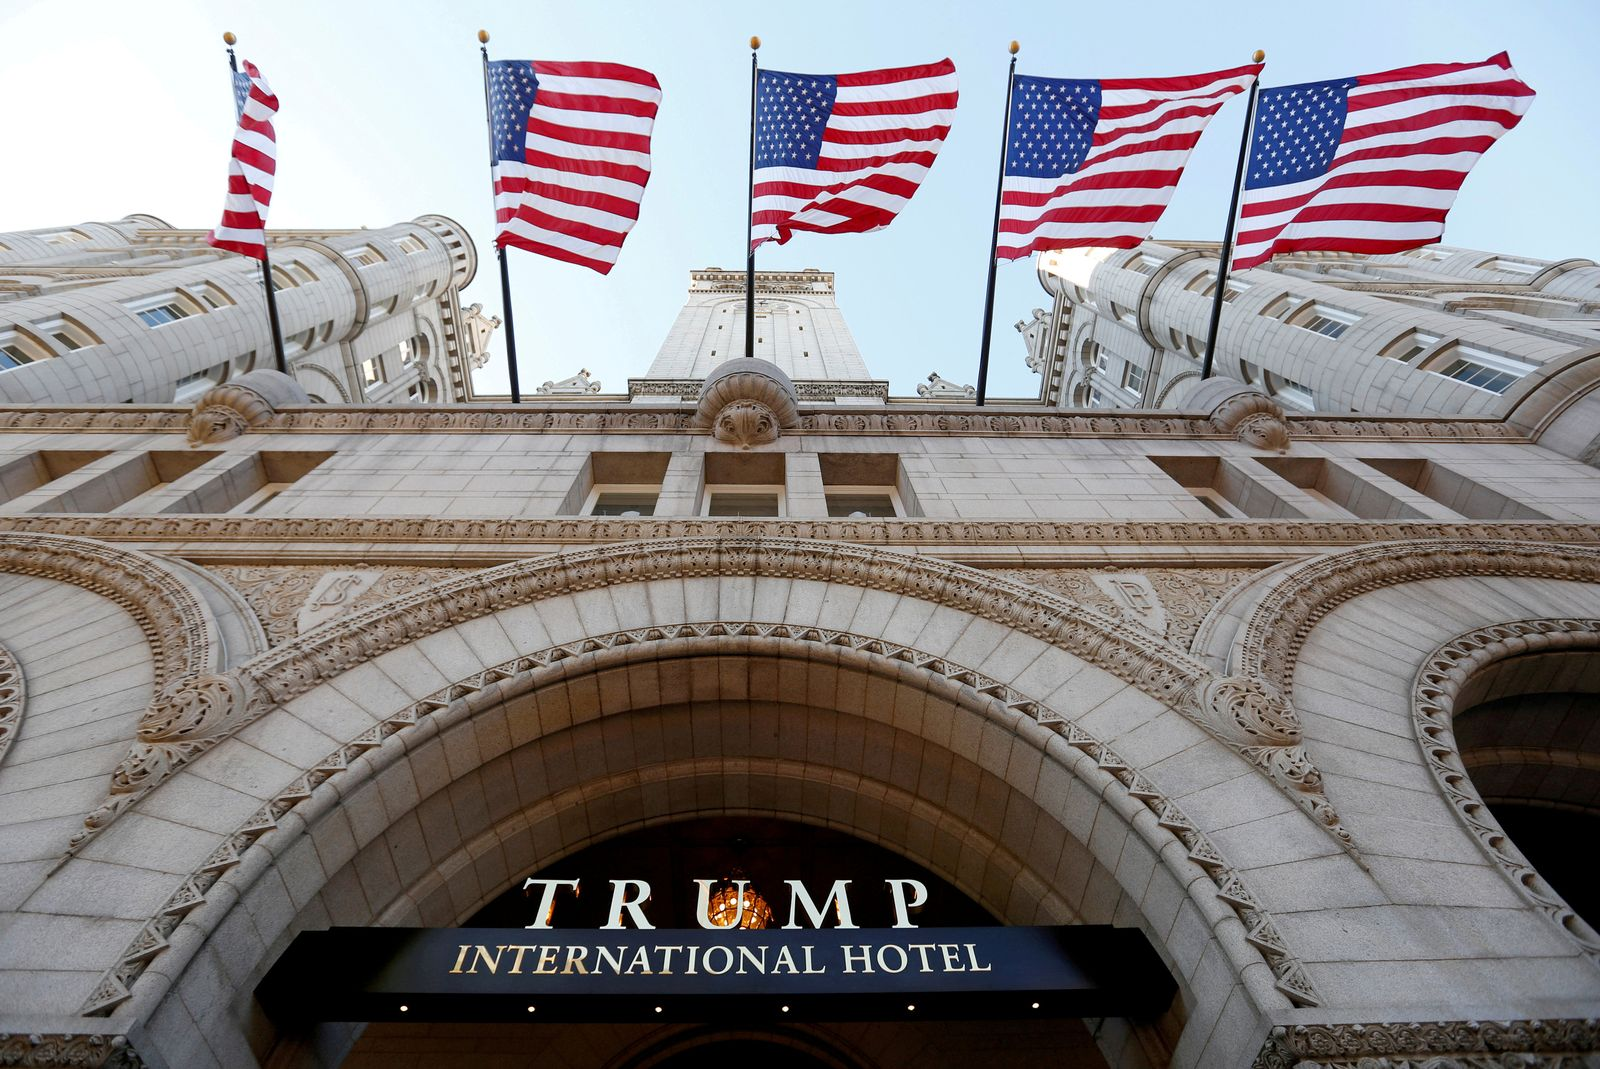 USA-TRUMP/EMOLUMENTS